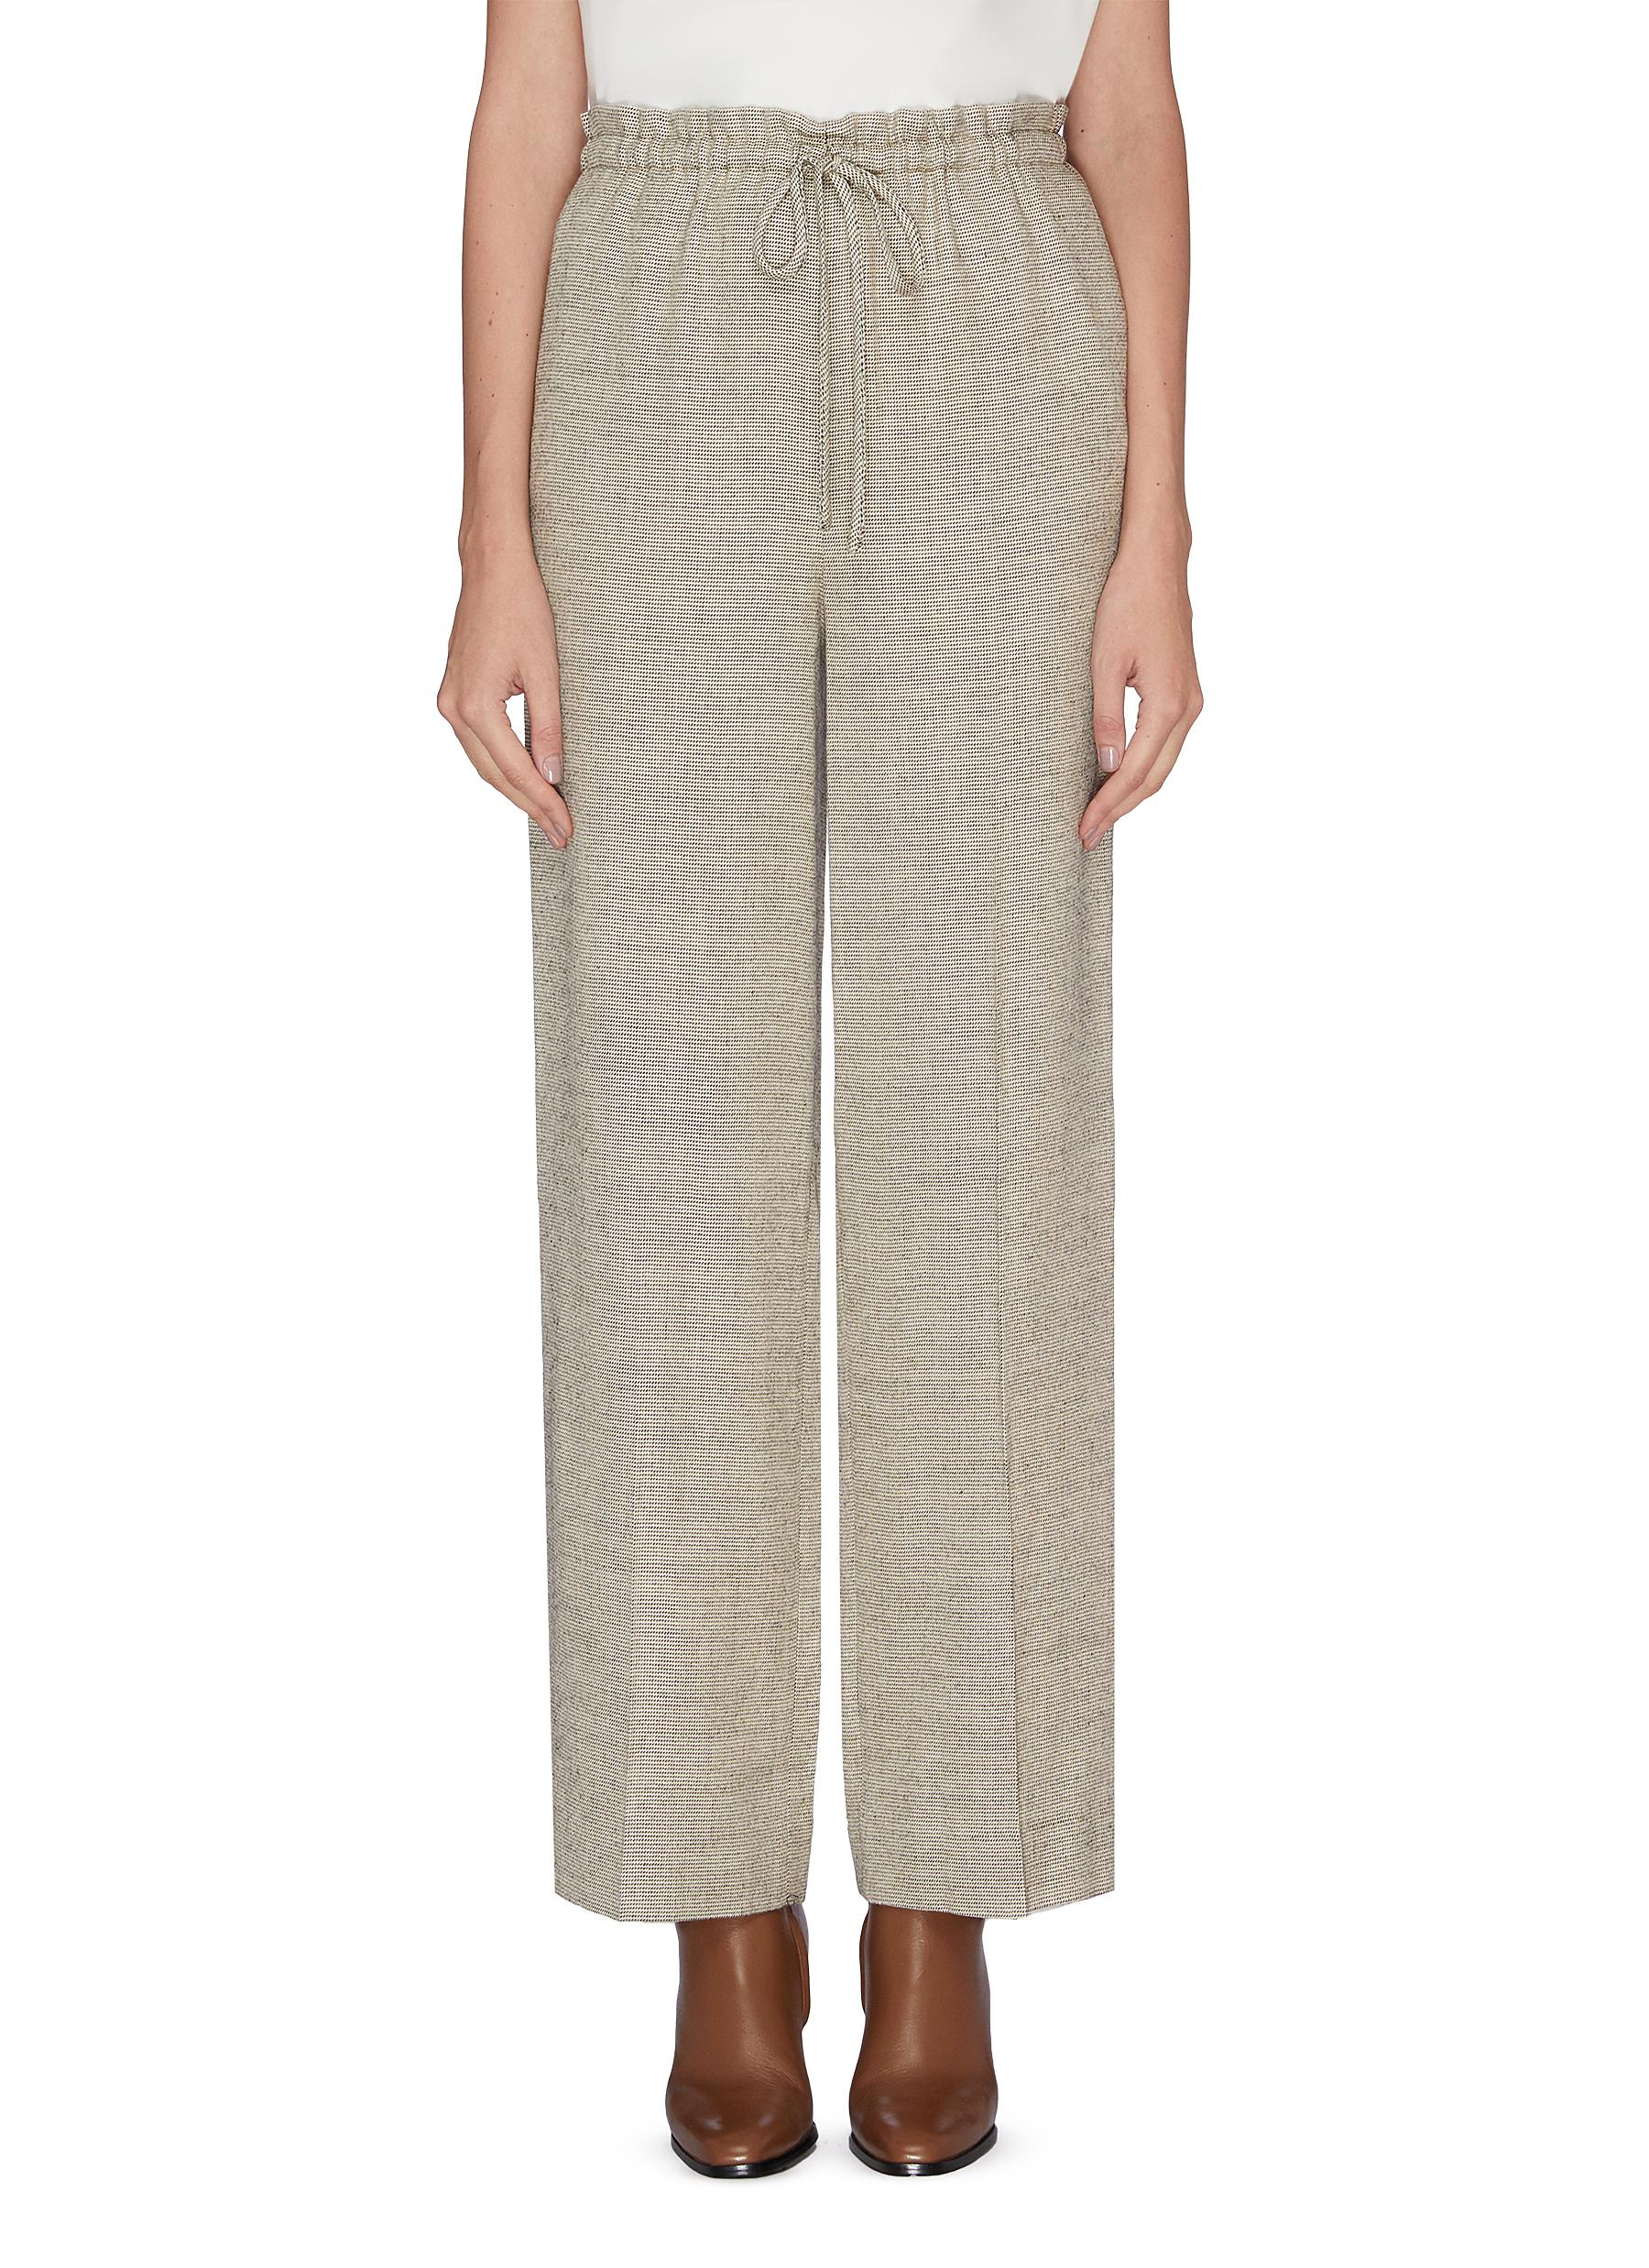 JR wool silk blend drawstring pants by The Row